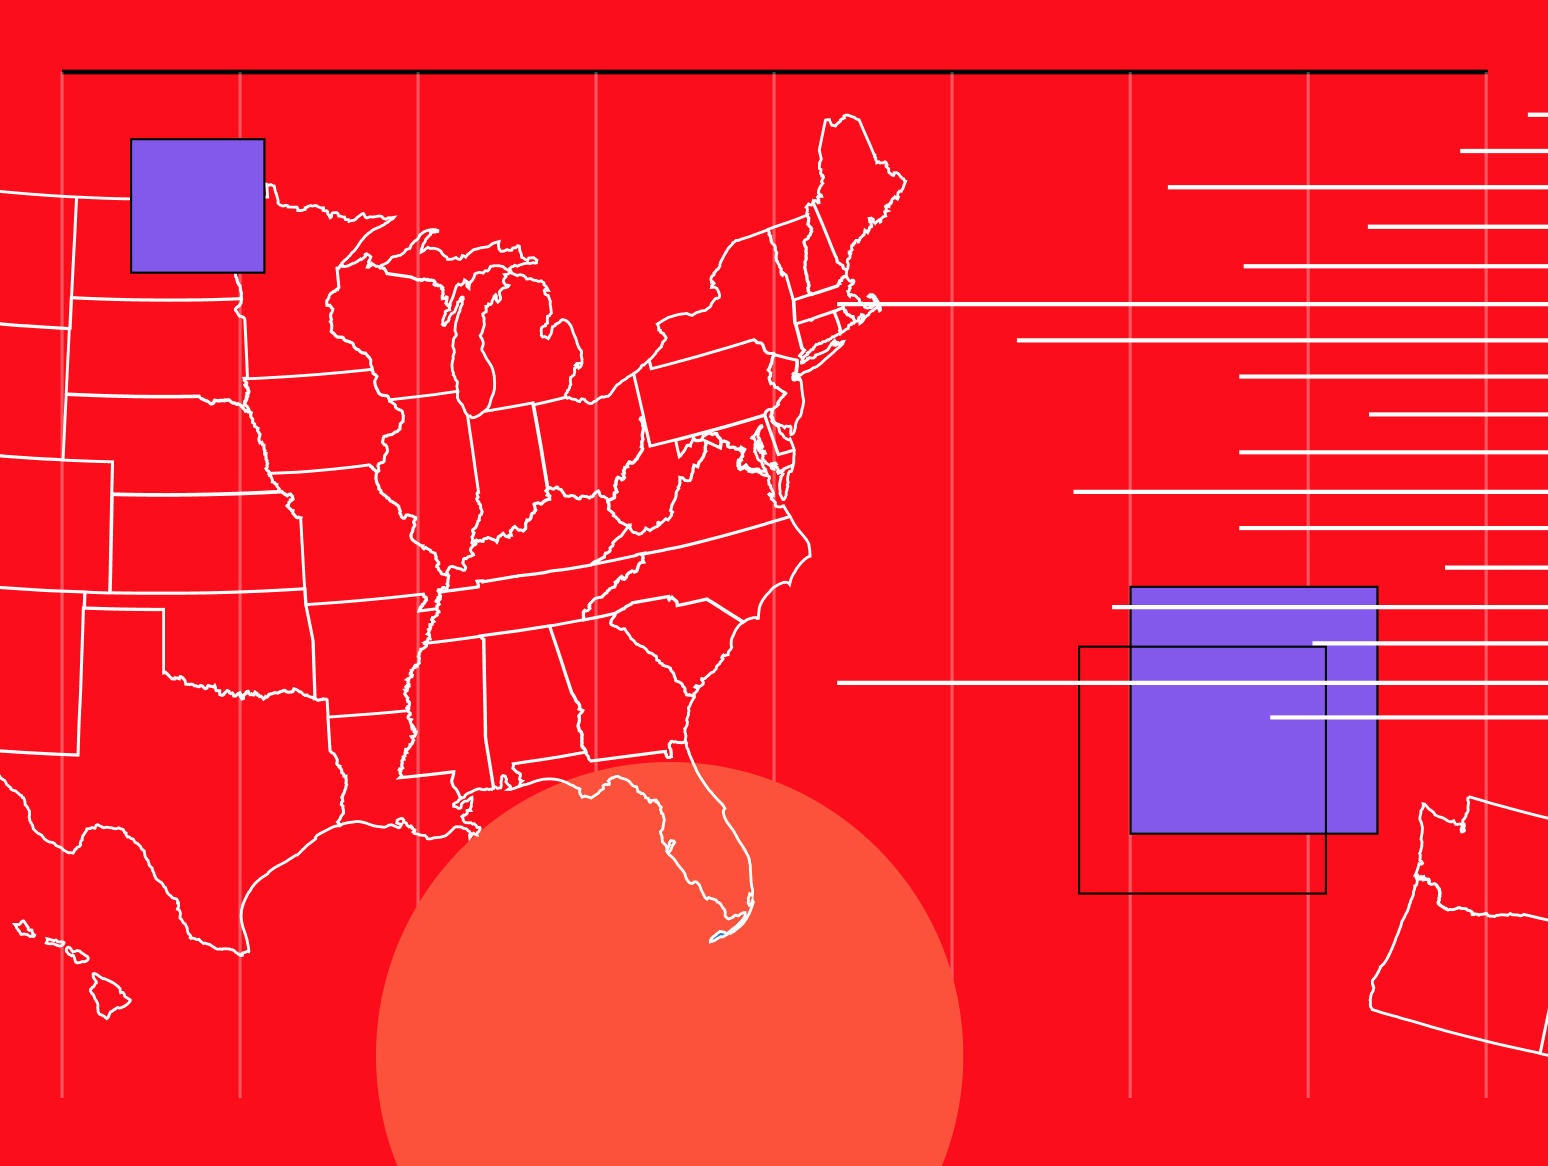 Image depicting US map against red background with abstract data visuals